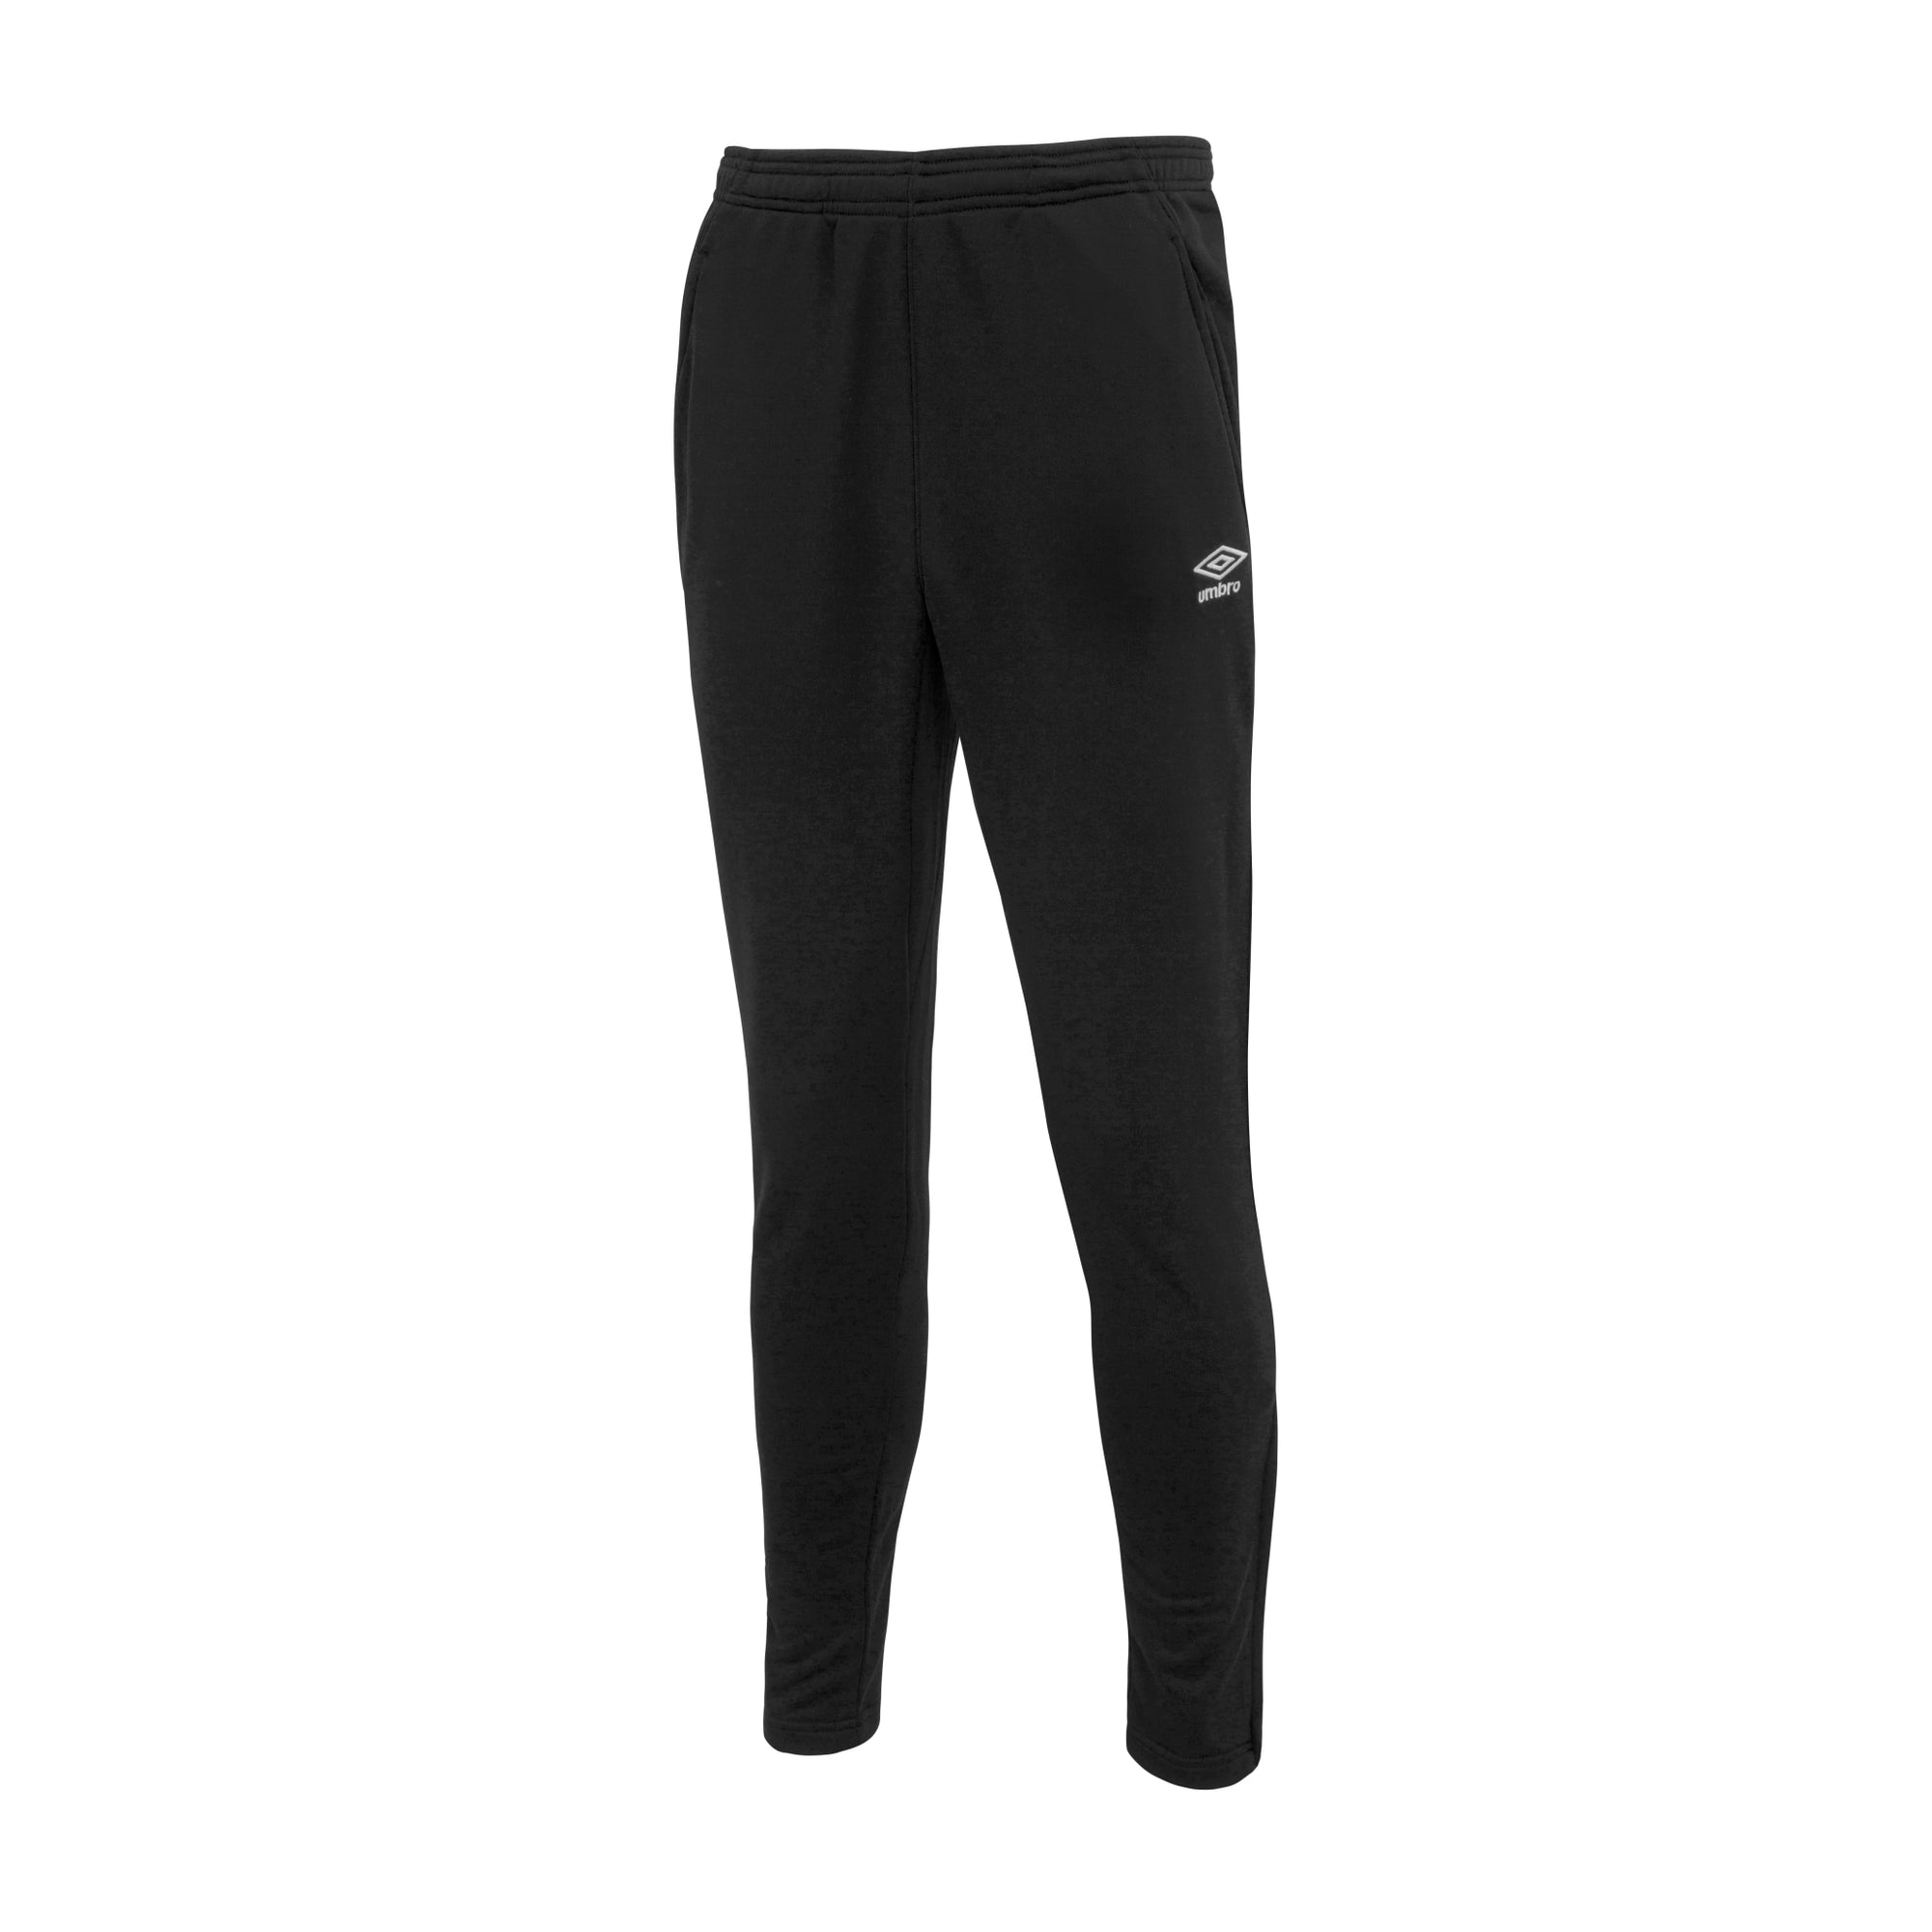 Umbro Tapered Training Pant - Black